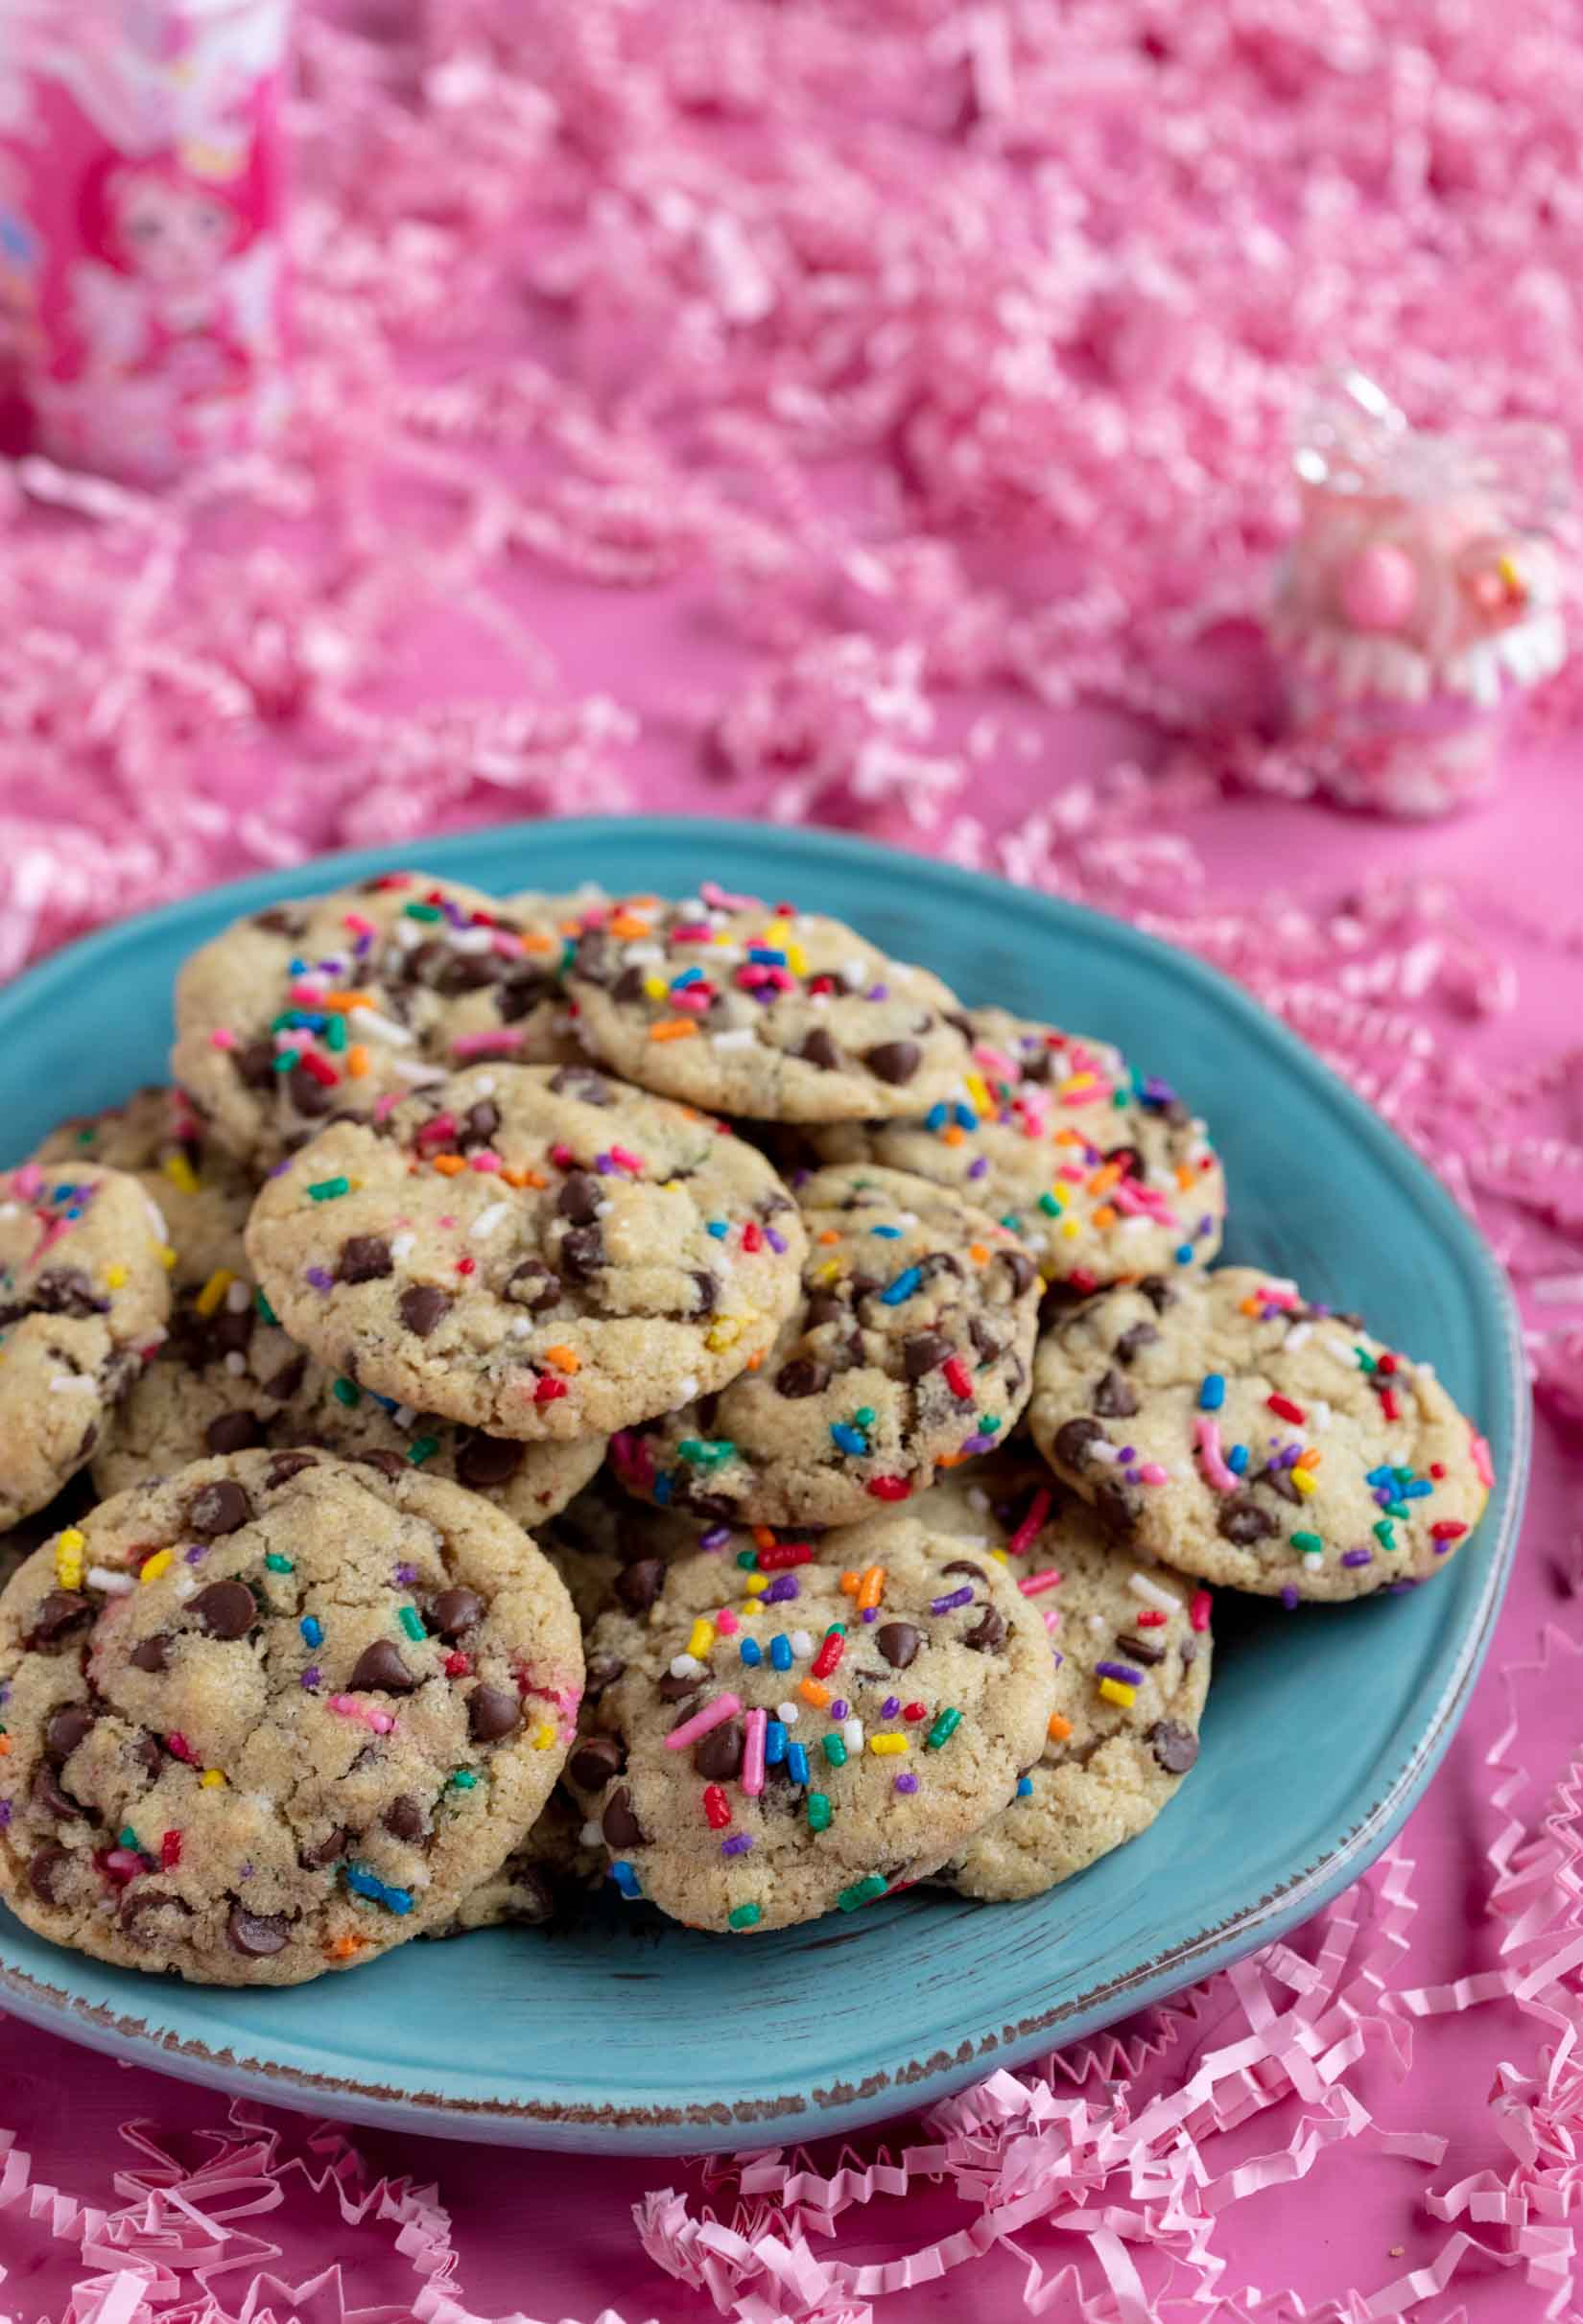 plate of vegan chocolate chip cookies with sprinkles